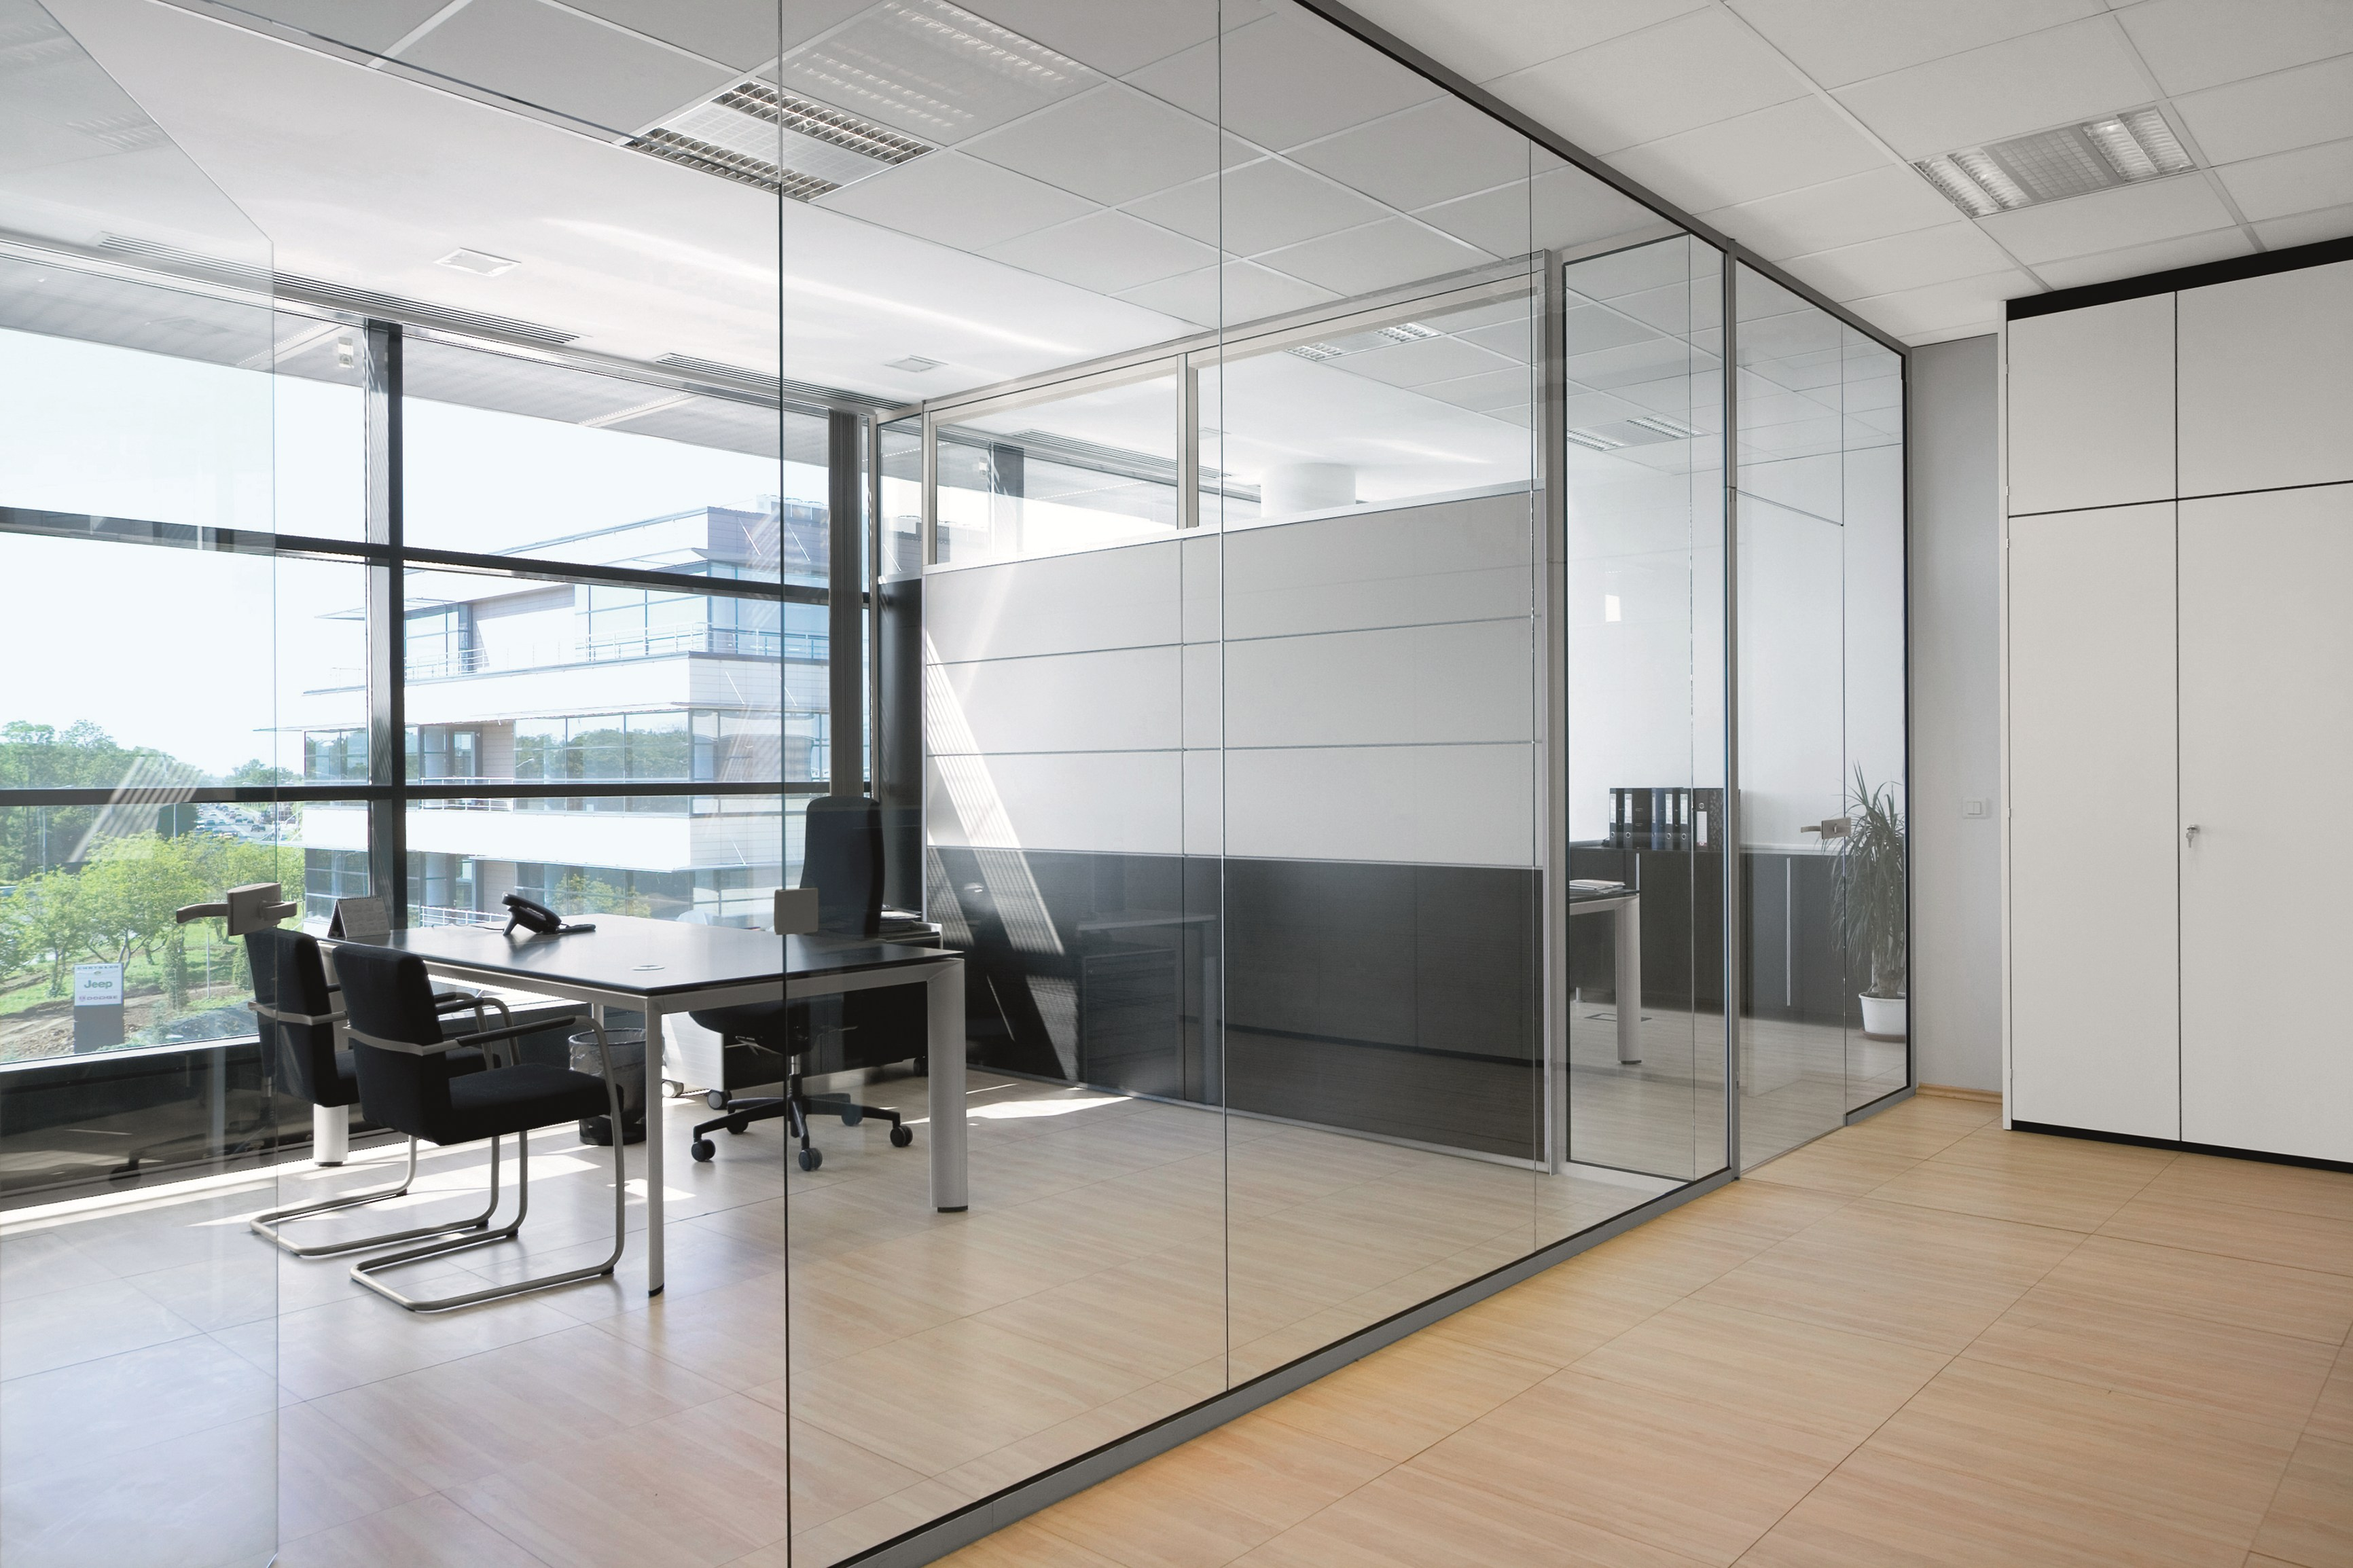 Why Glass Walls & Doors Are All the Rage in Office Remodels